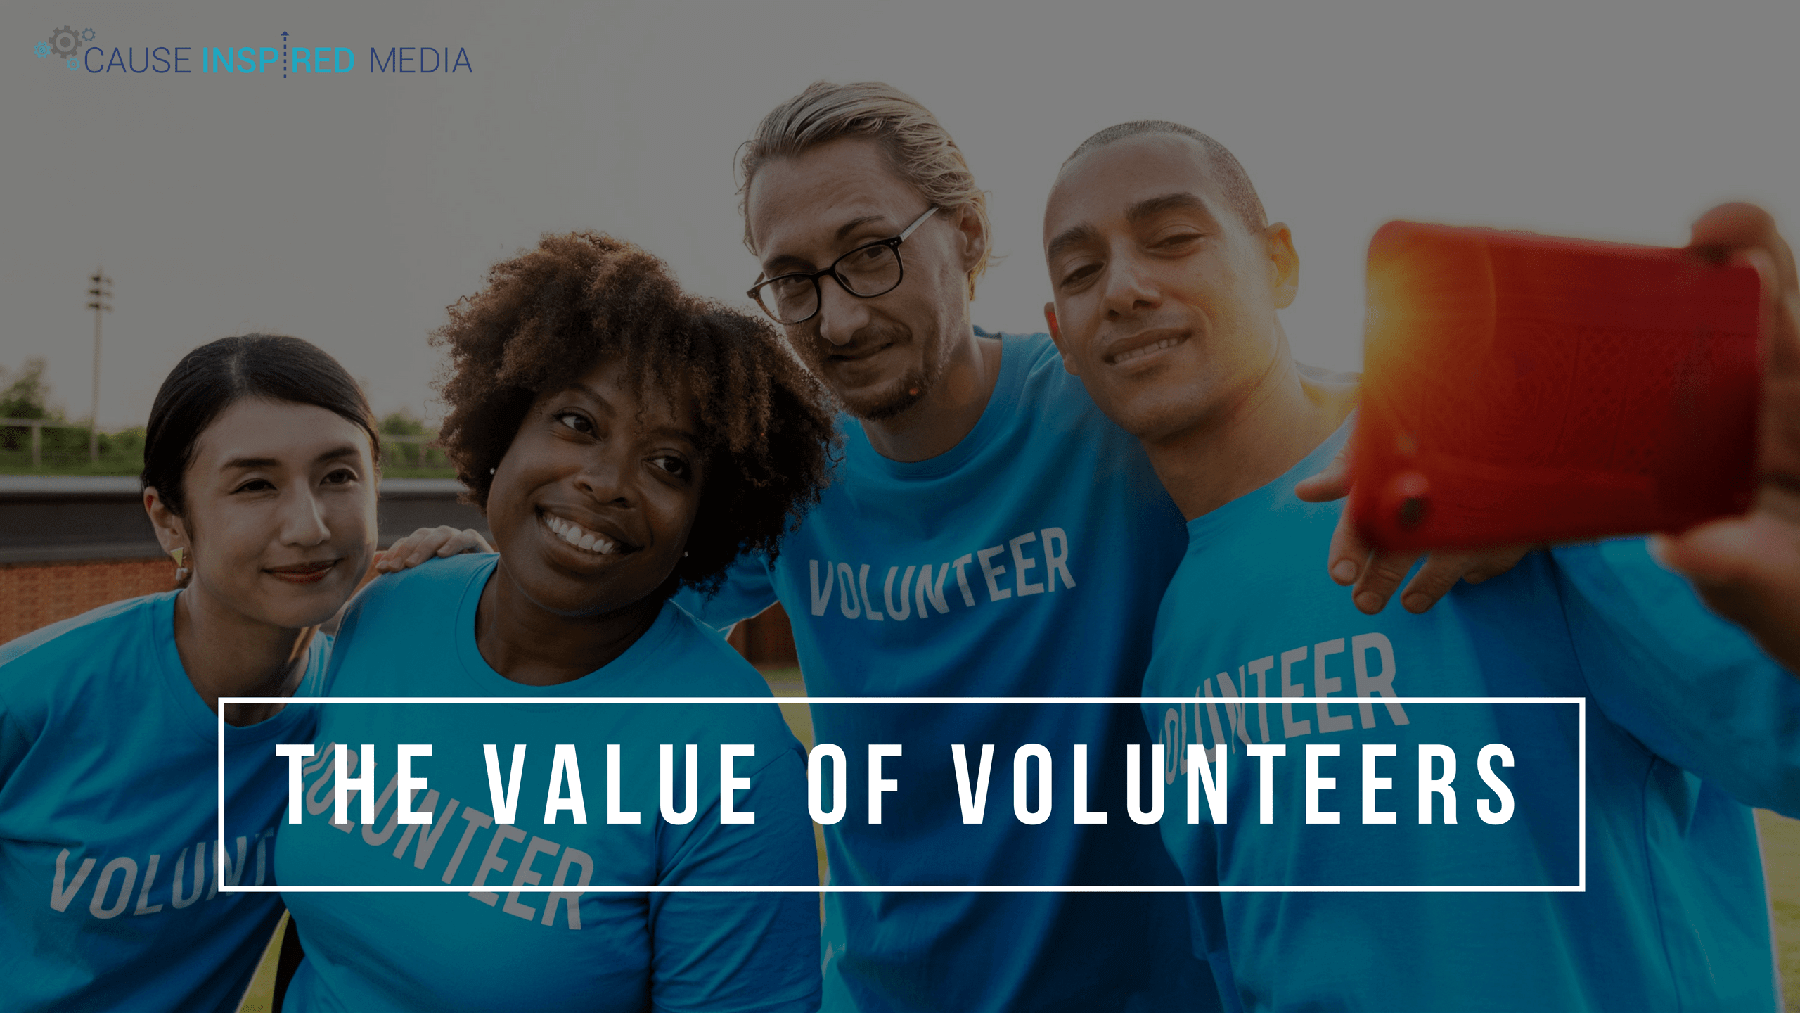 The Value of Volunteers